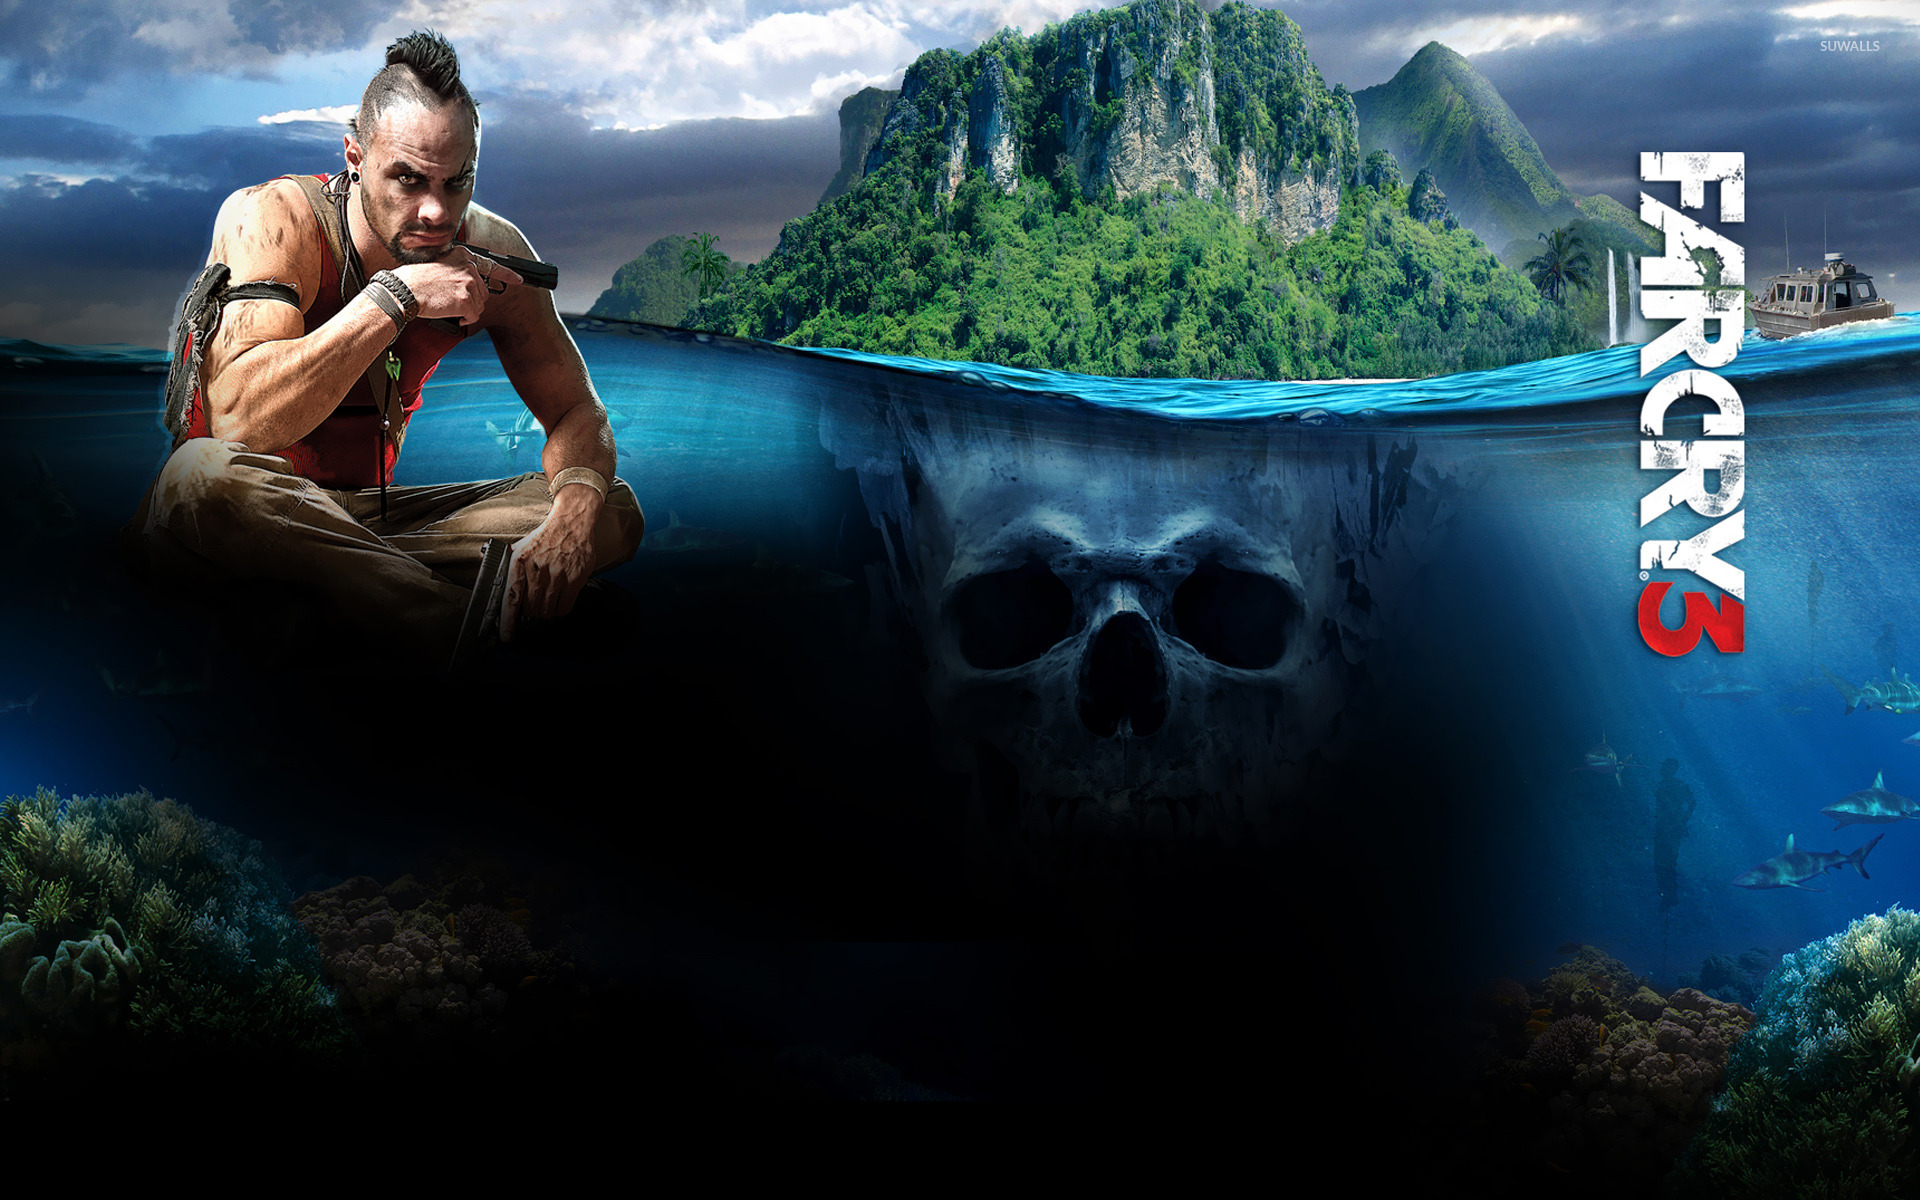 Vaas - Far Cry 3 [4] wallpaper - Game wallpapers - #17876